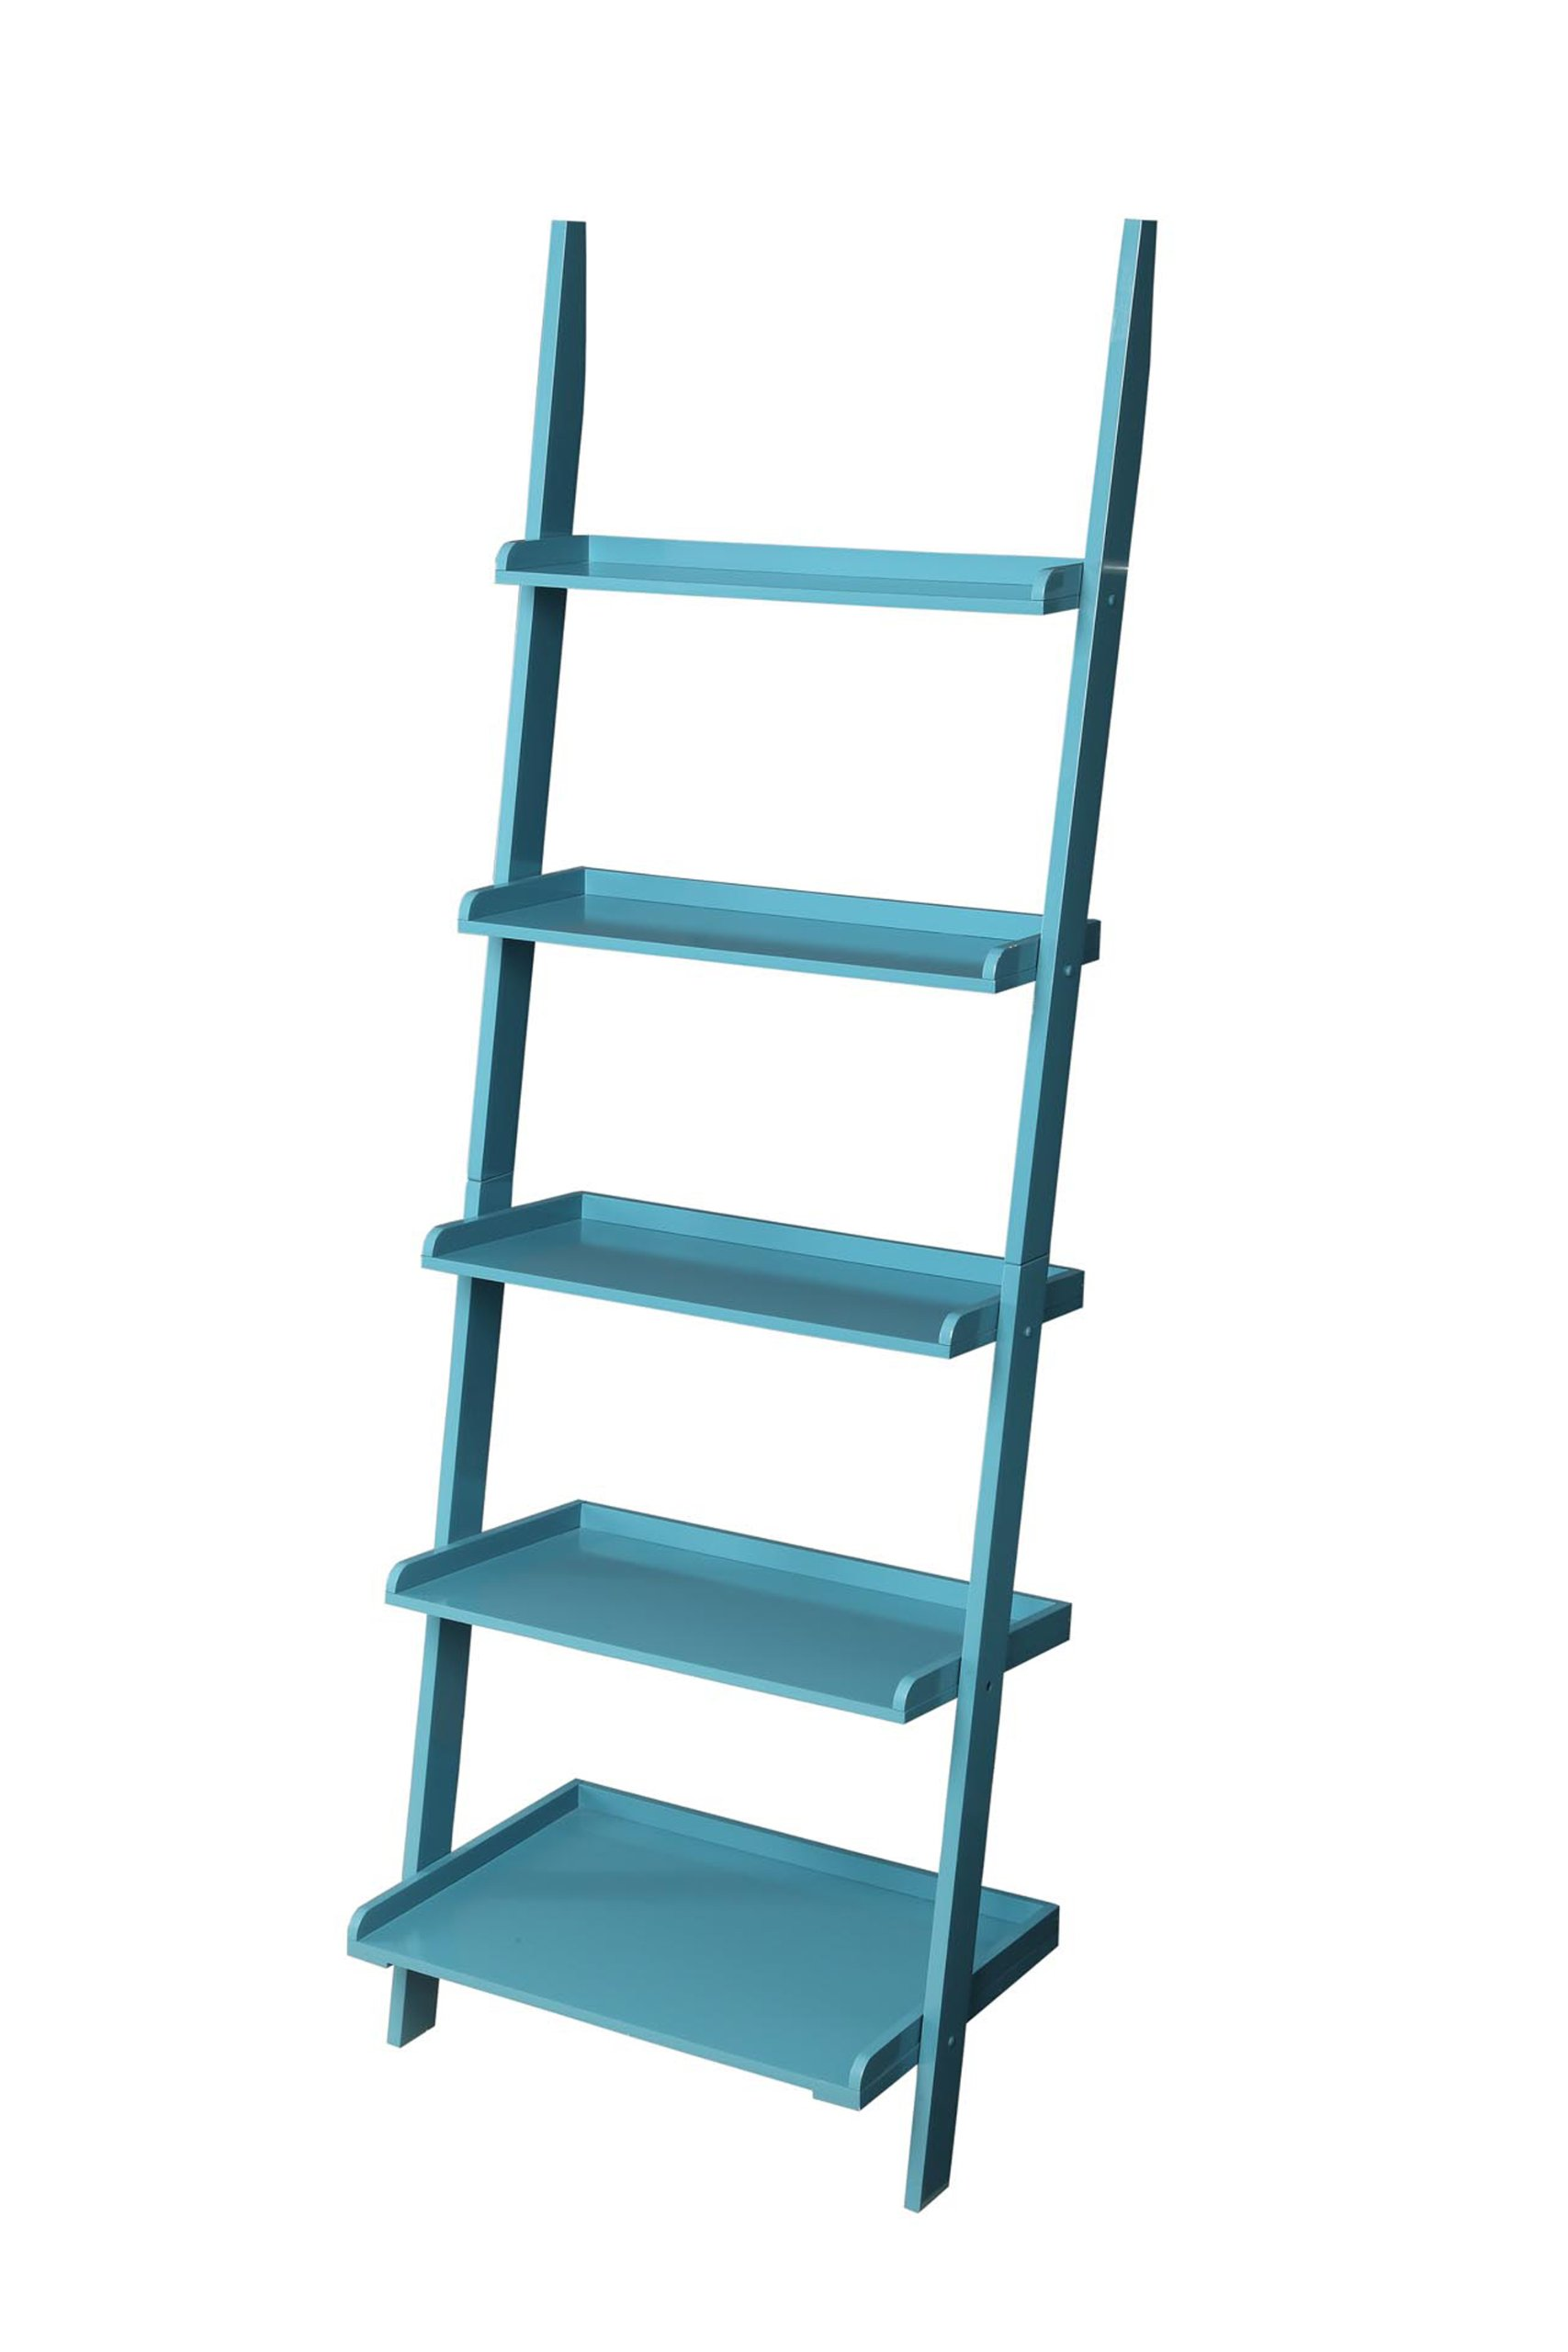 Convenience Concepts French Country Bookshelf Ladder, Blue by Convenience Concepts